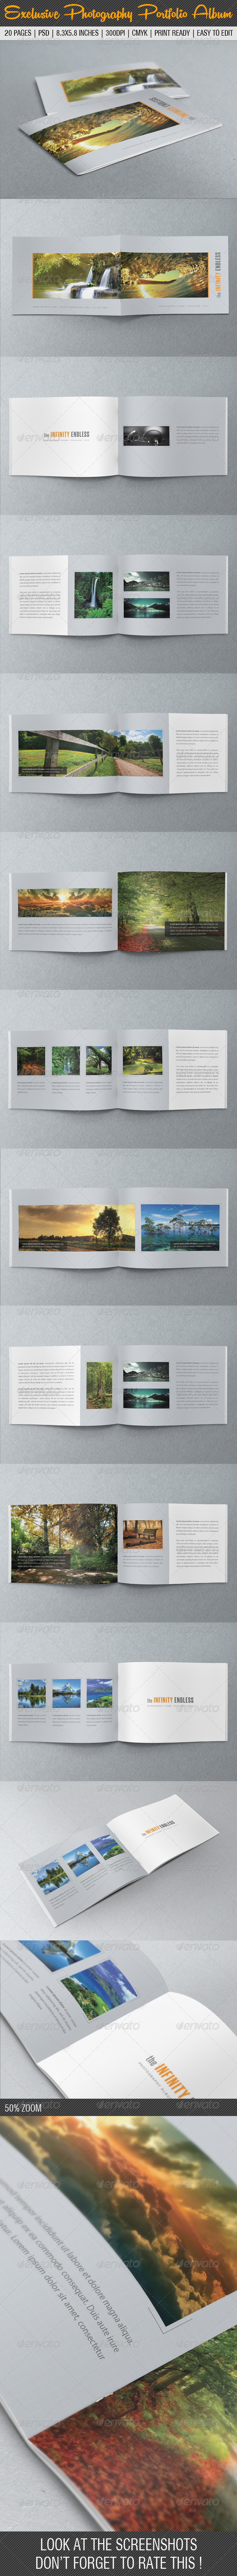 Exclusive Photography Portfolio Album - Photo Albums Print Templates